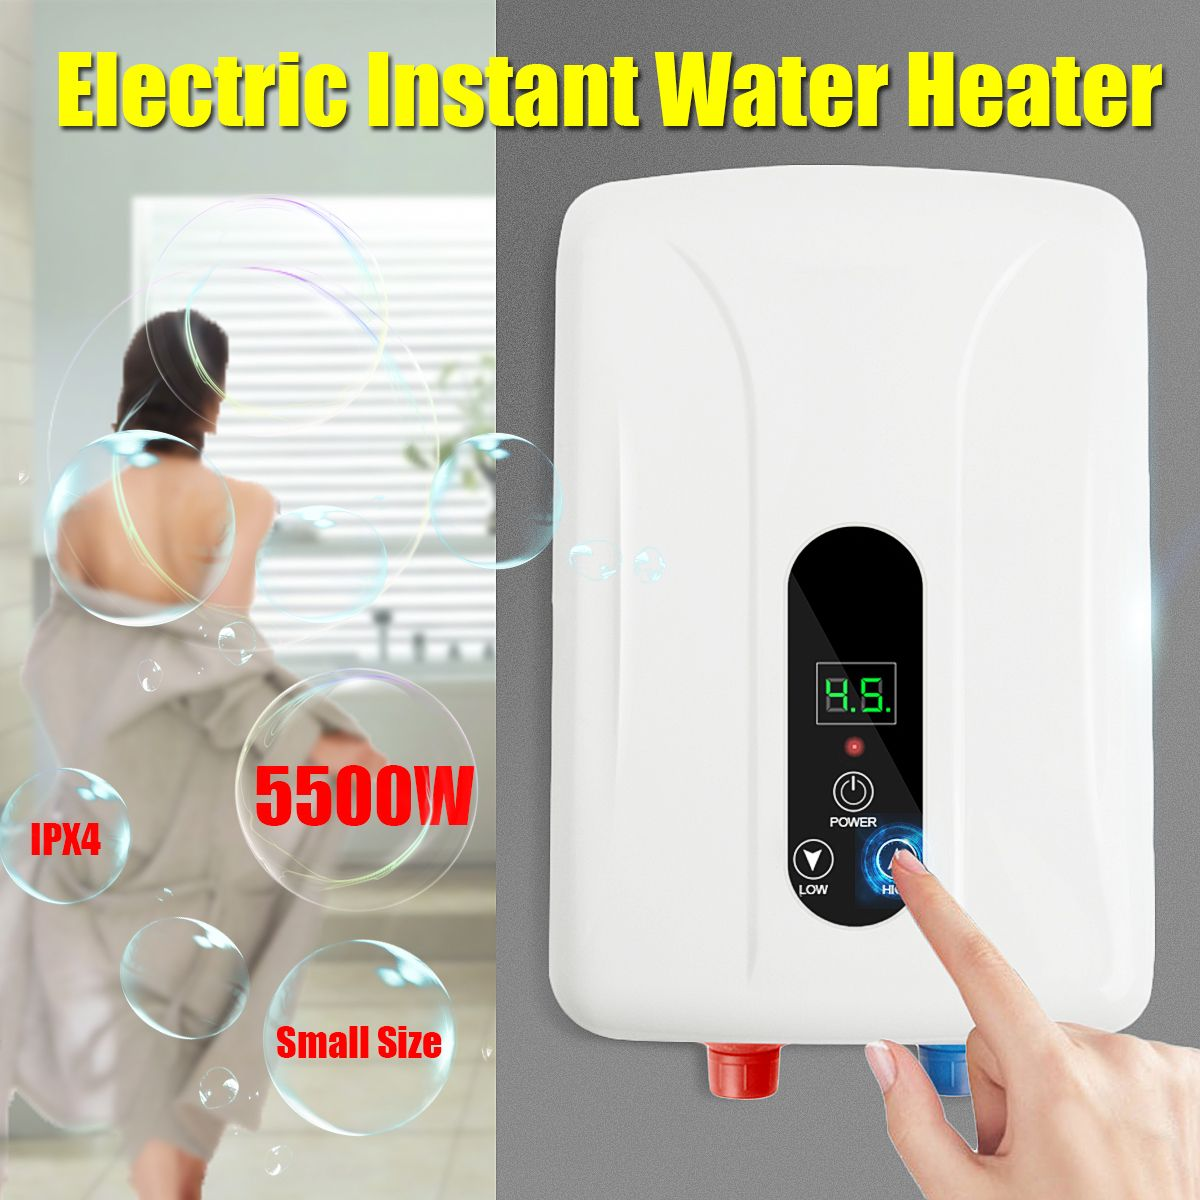 5500W 220V Tankless Instant Electric Hot Water Heater Boiler Bathroom Shower Set Automatic Protection Insulation Anti-corrosion